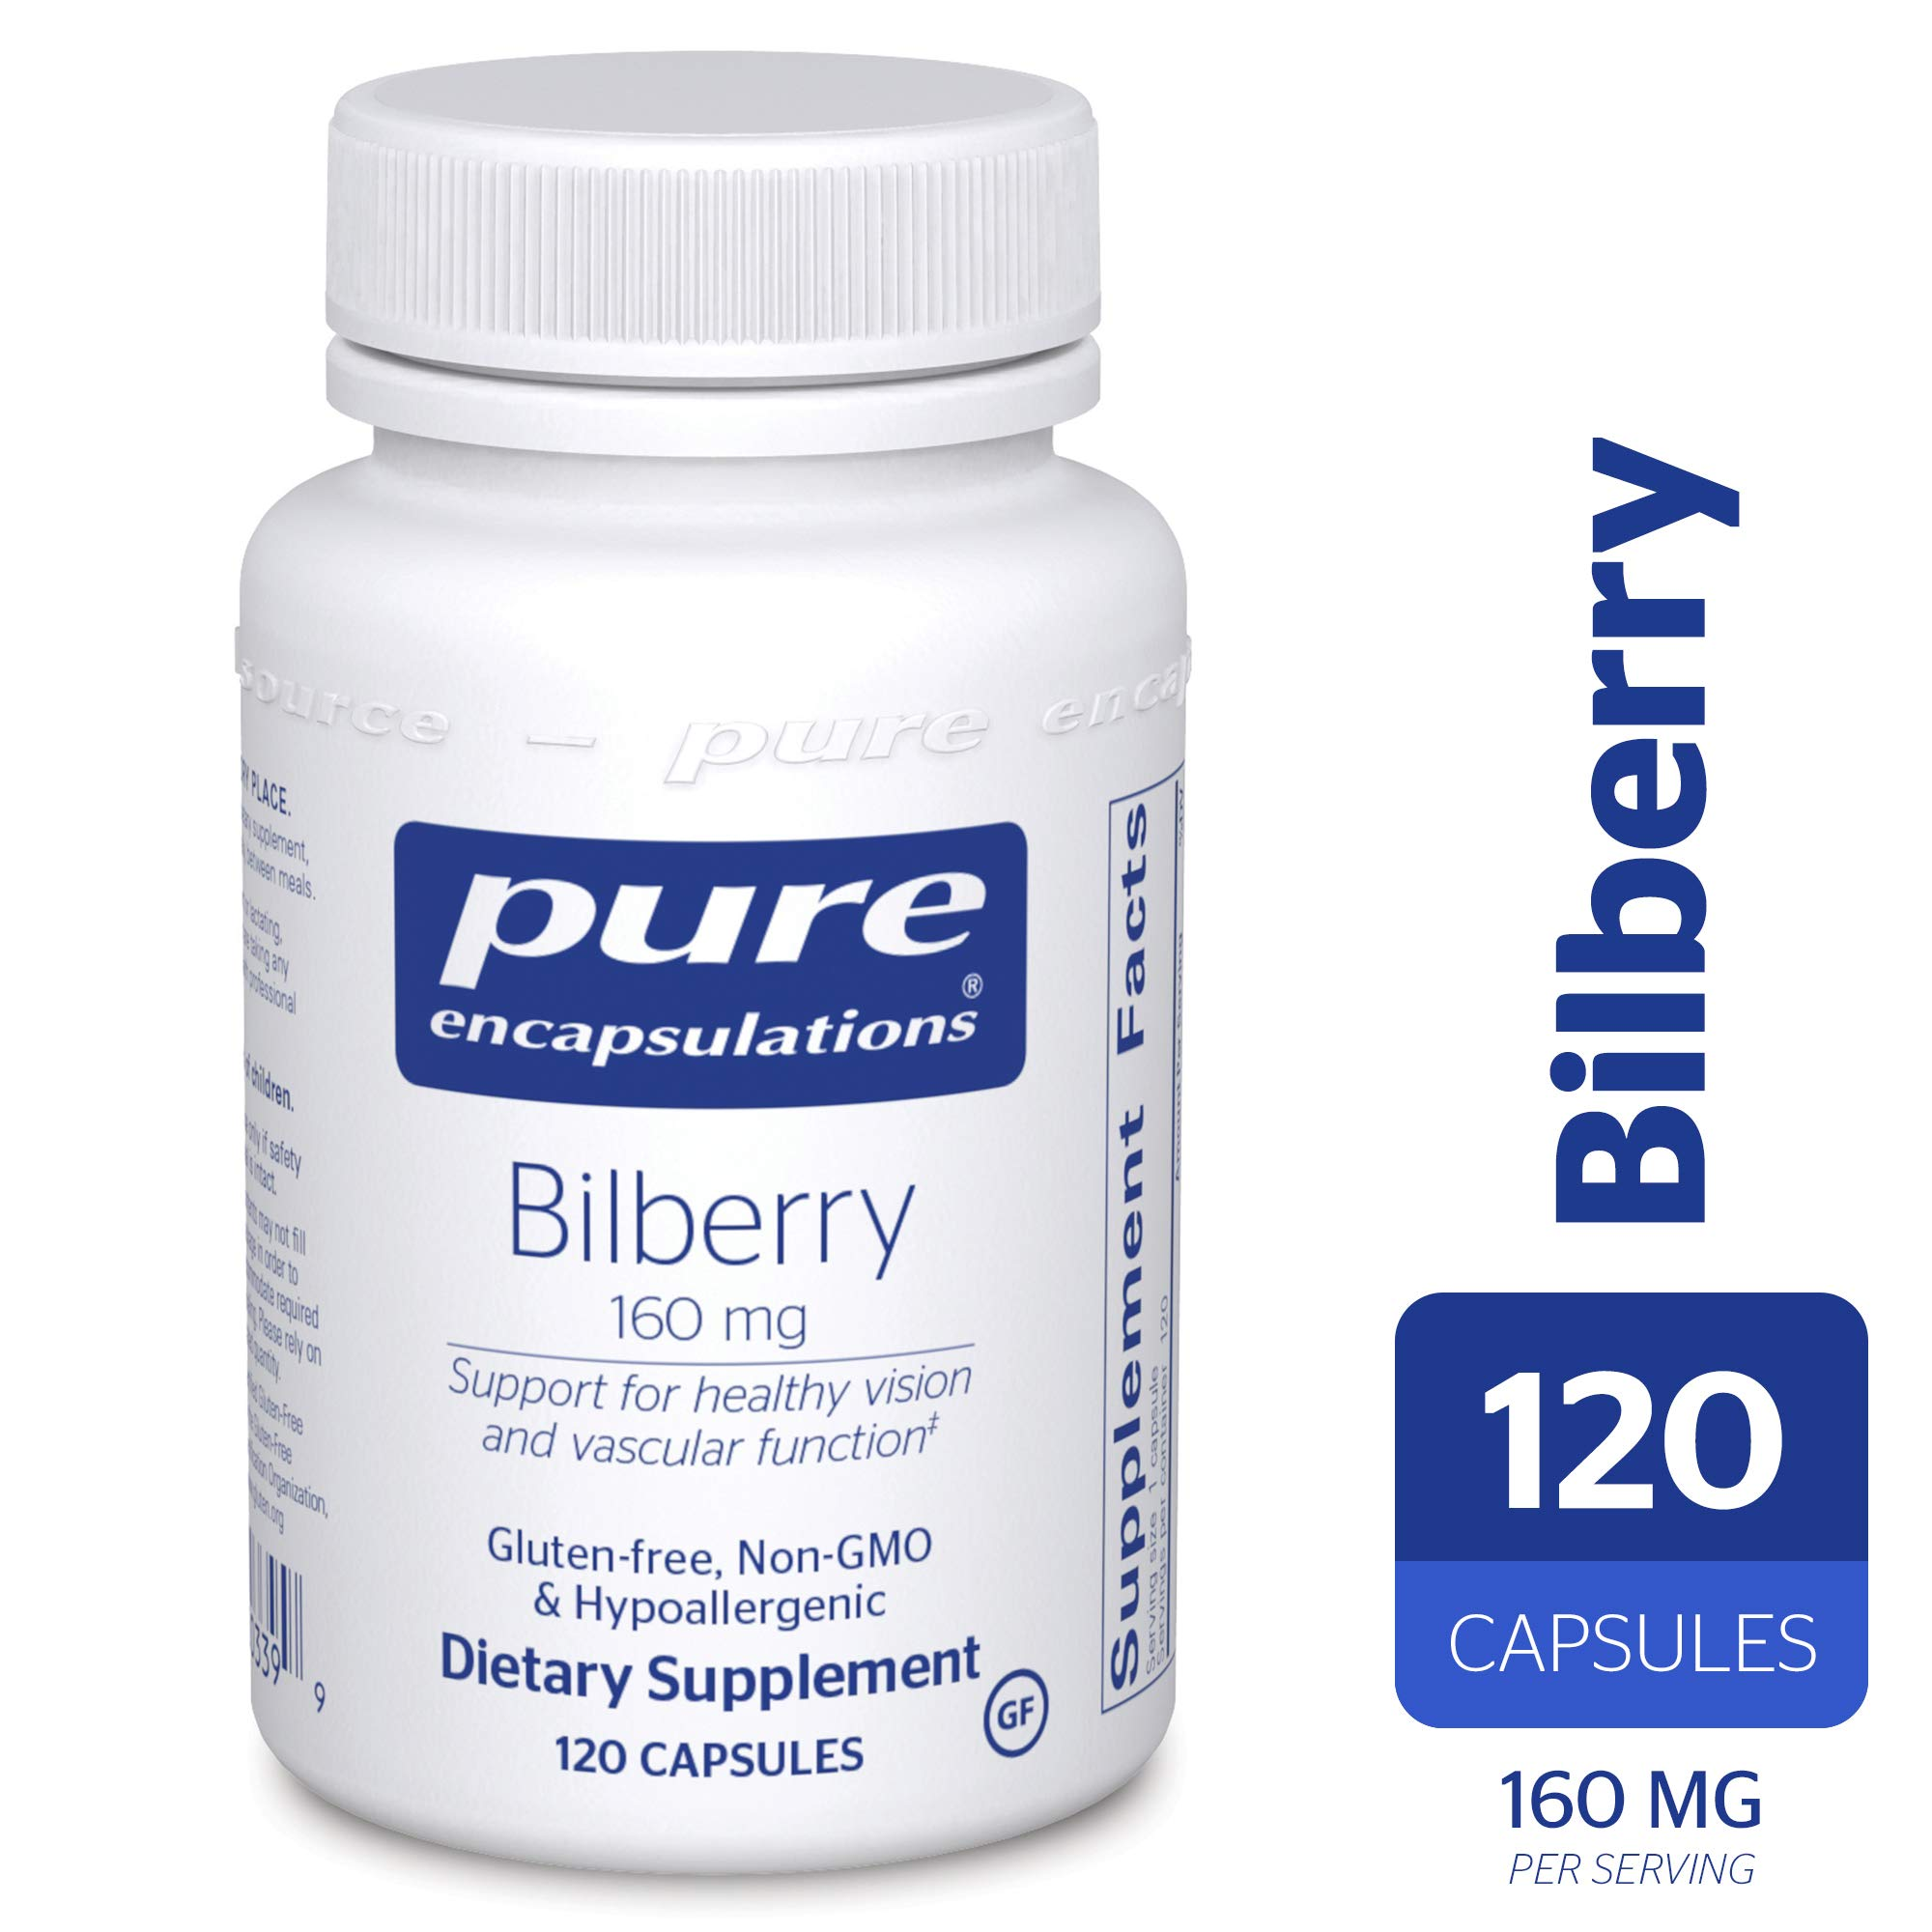 Pure Encapsulations - Bilberry 160 mg - Hypoallergenic Dietary Supplement to Promote Healthy Vision* - 120 Capsules